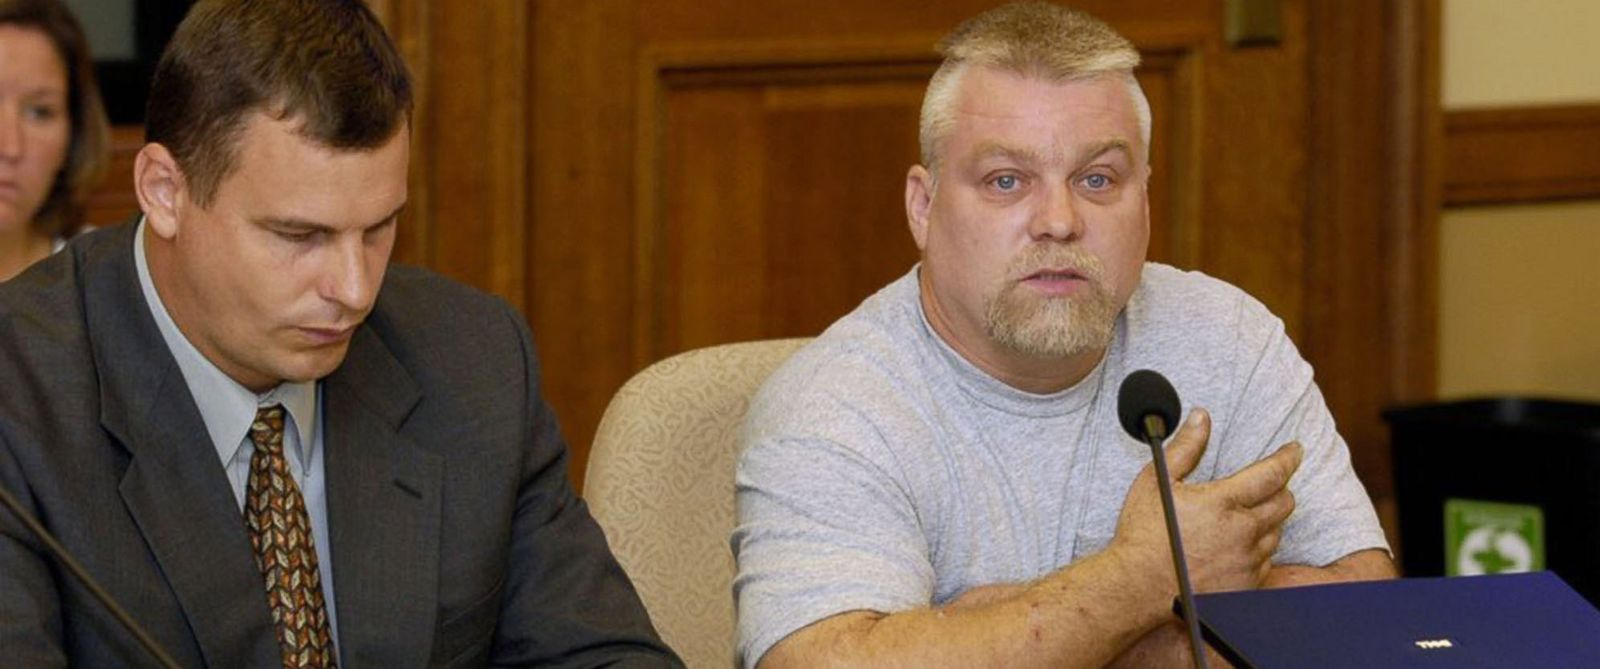 """PHOTO: This image released by Netflix shows Steven Avery, right, in the Netflix original documentary series """"Making A Murderer."""""""